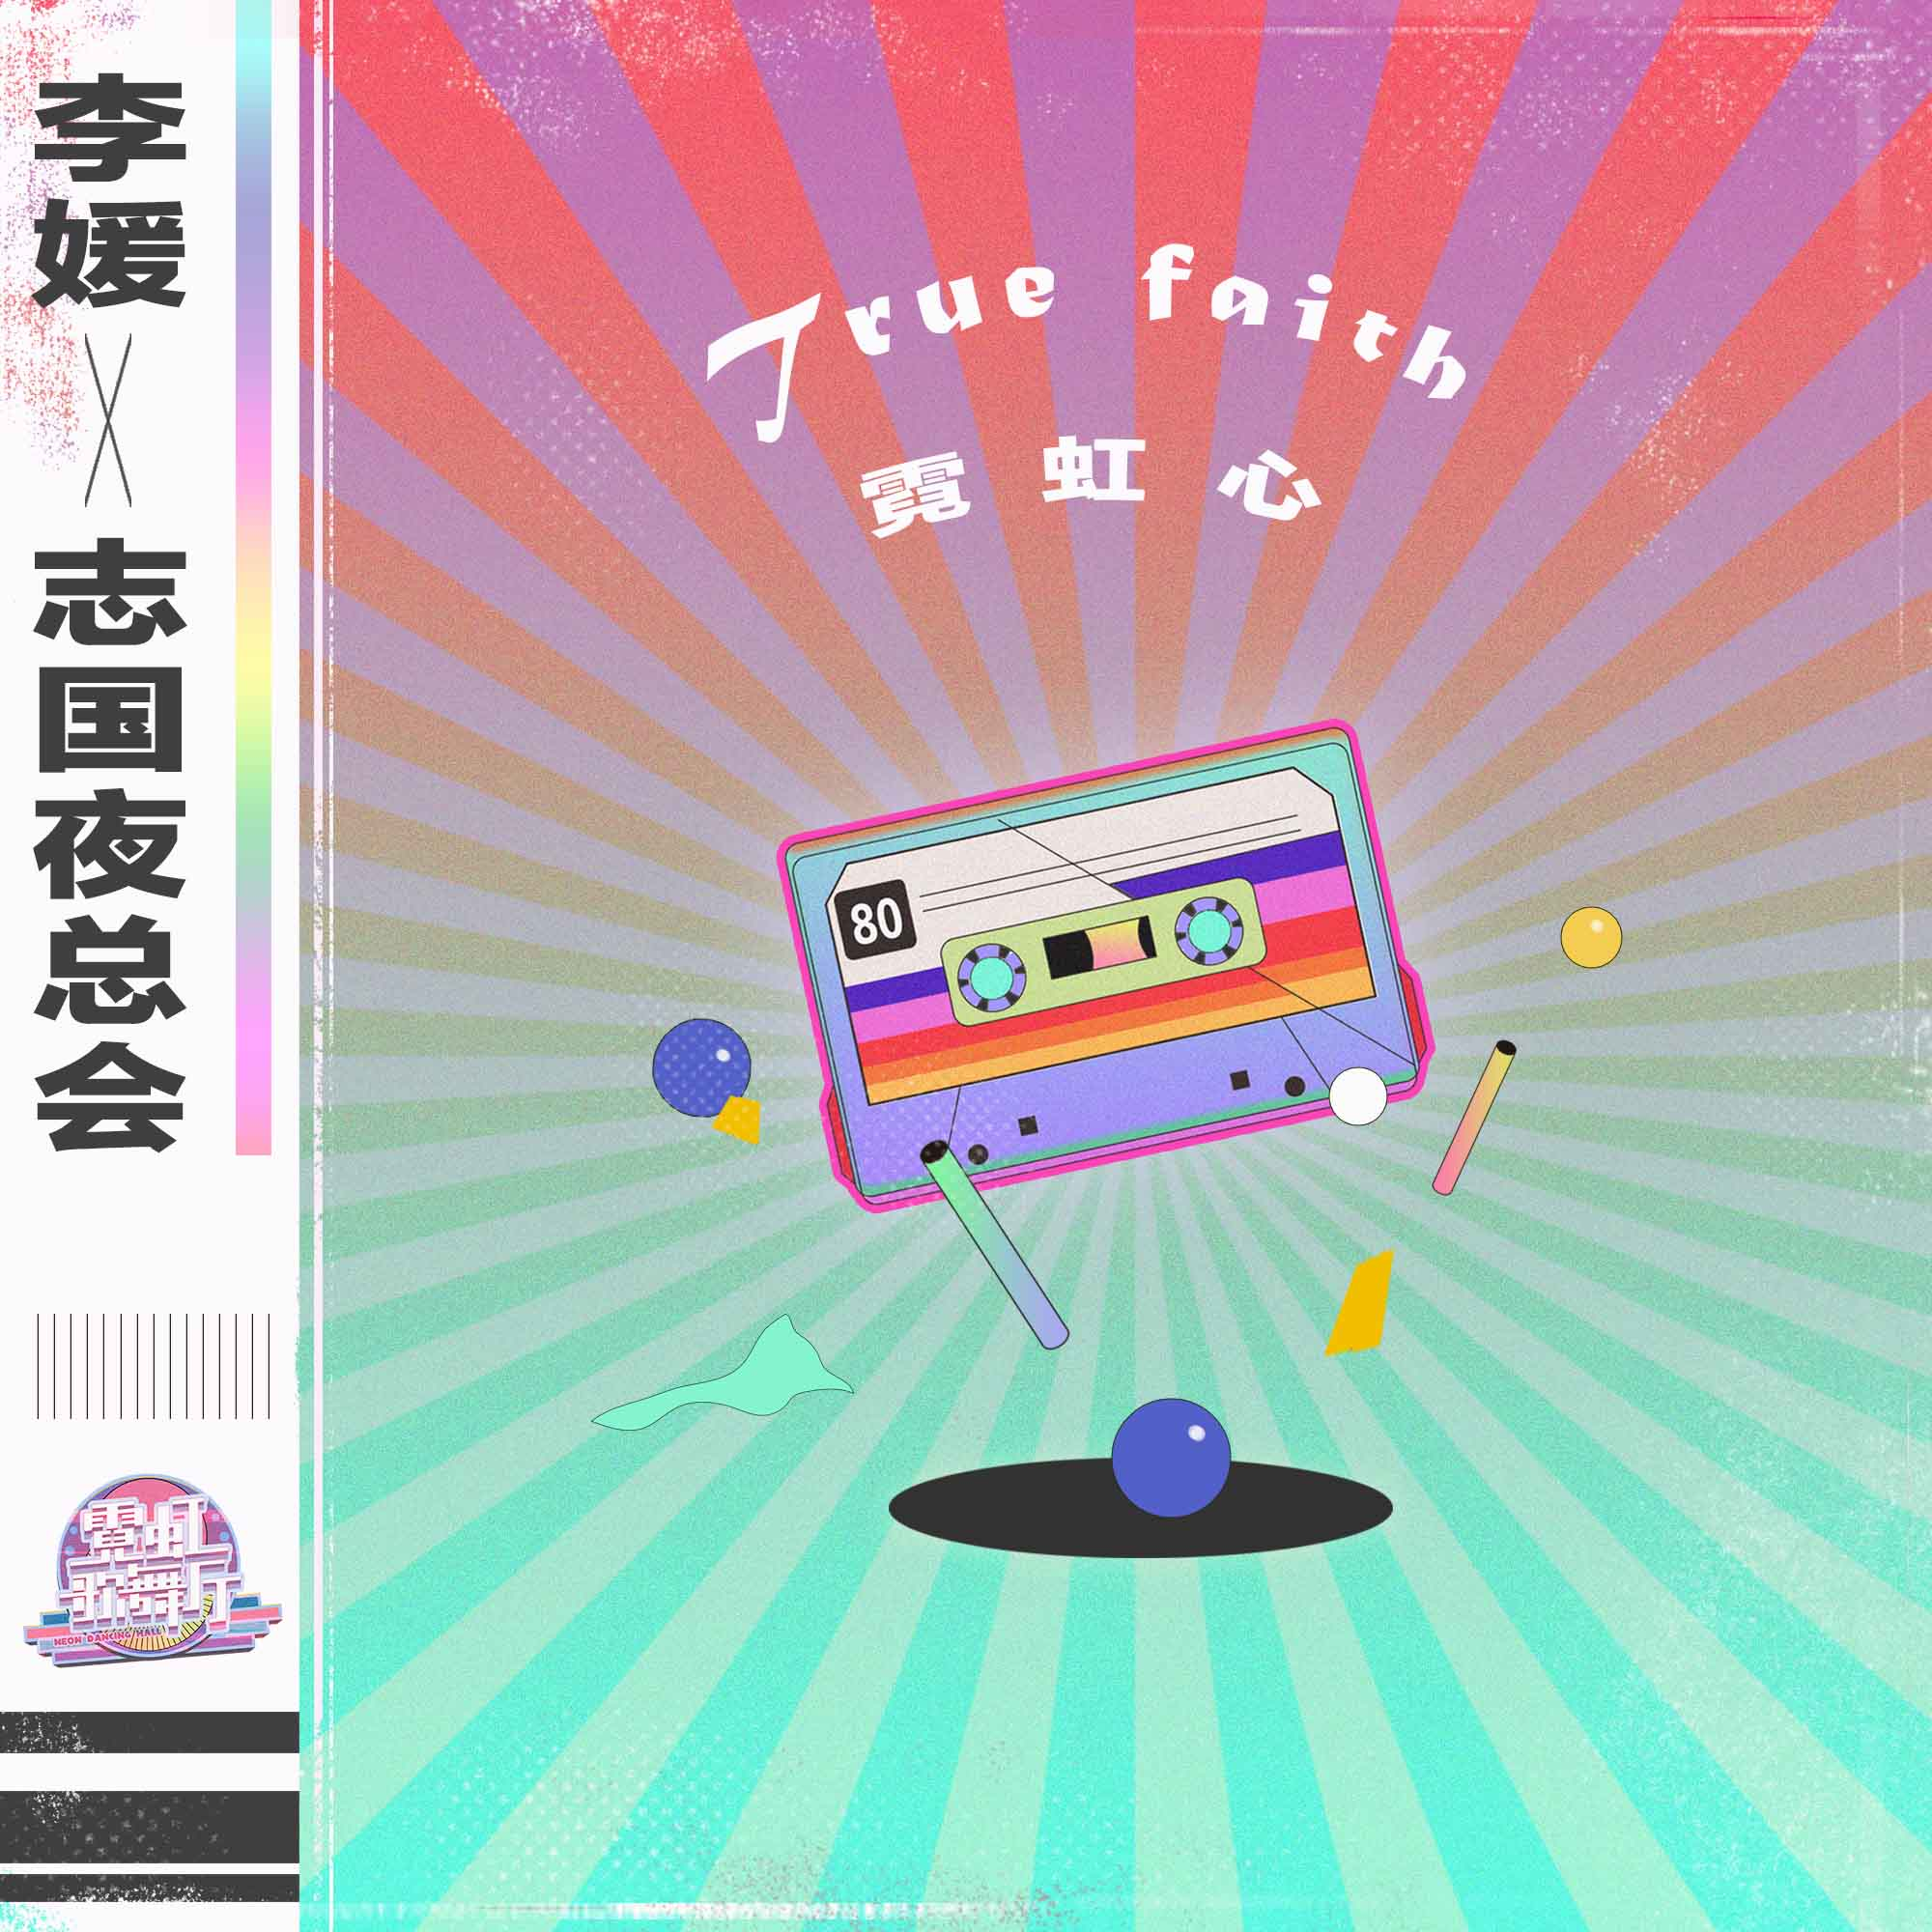 True faith 霓虹心